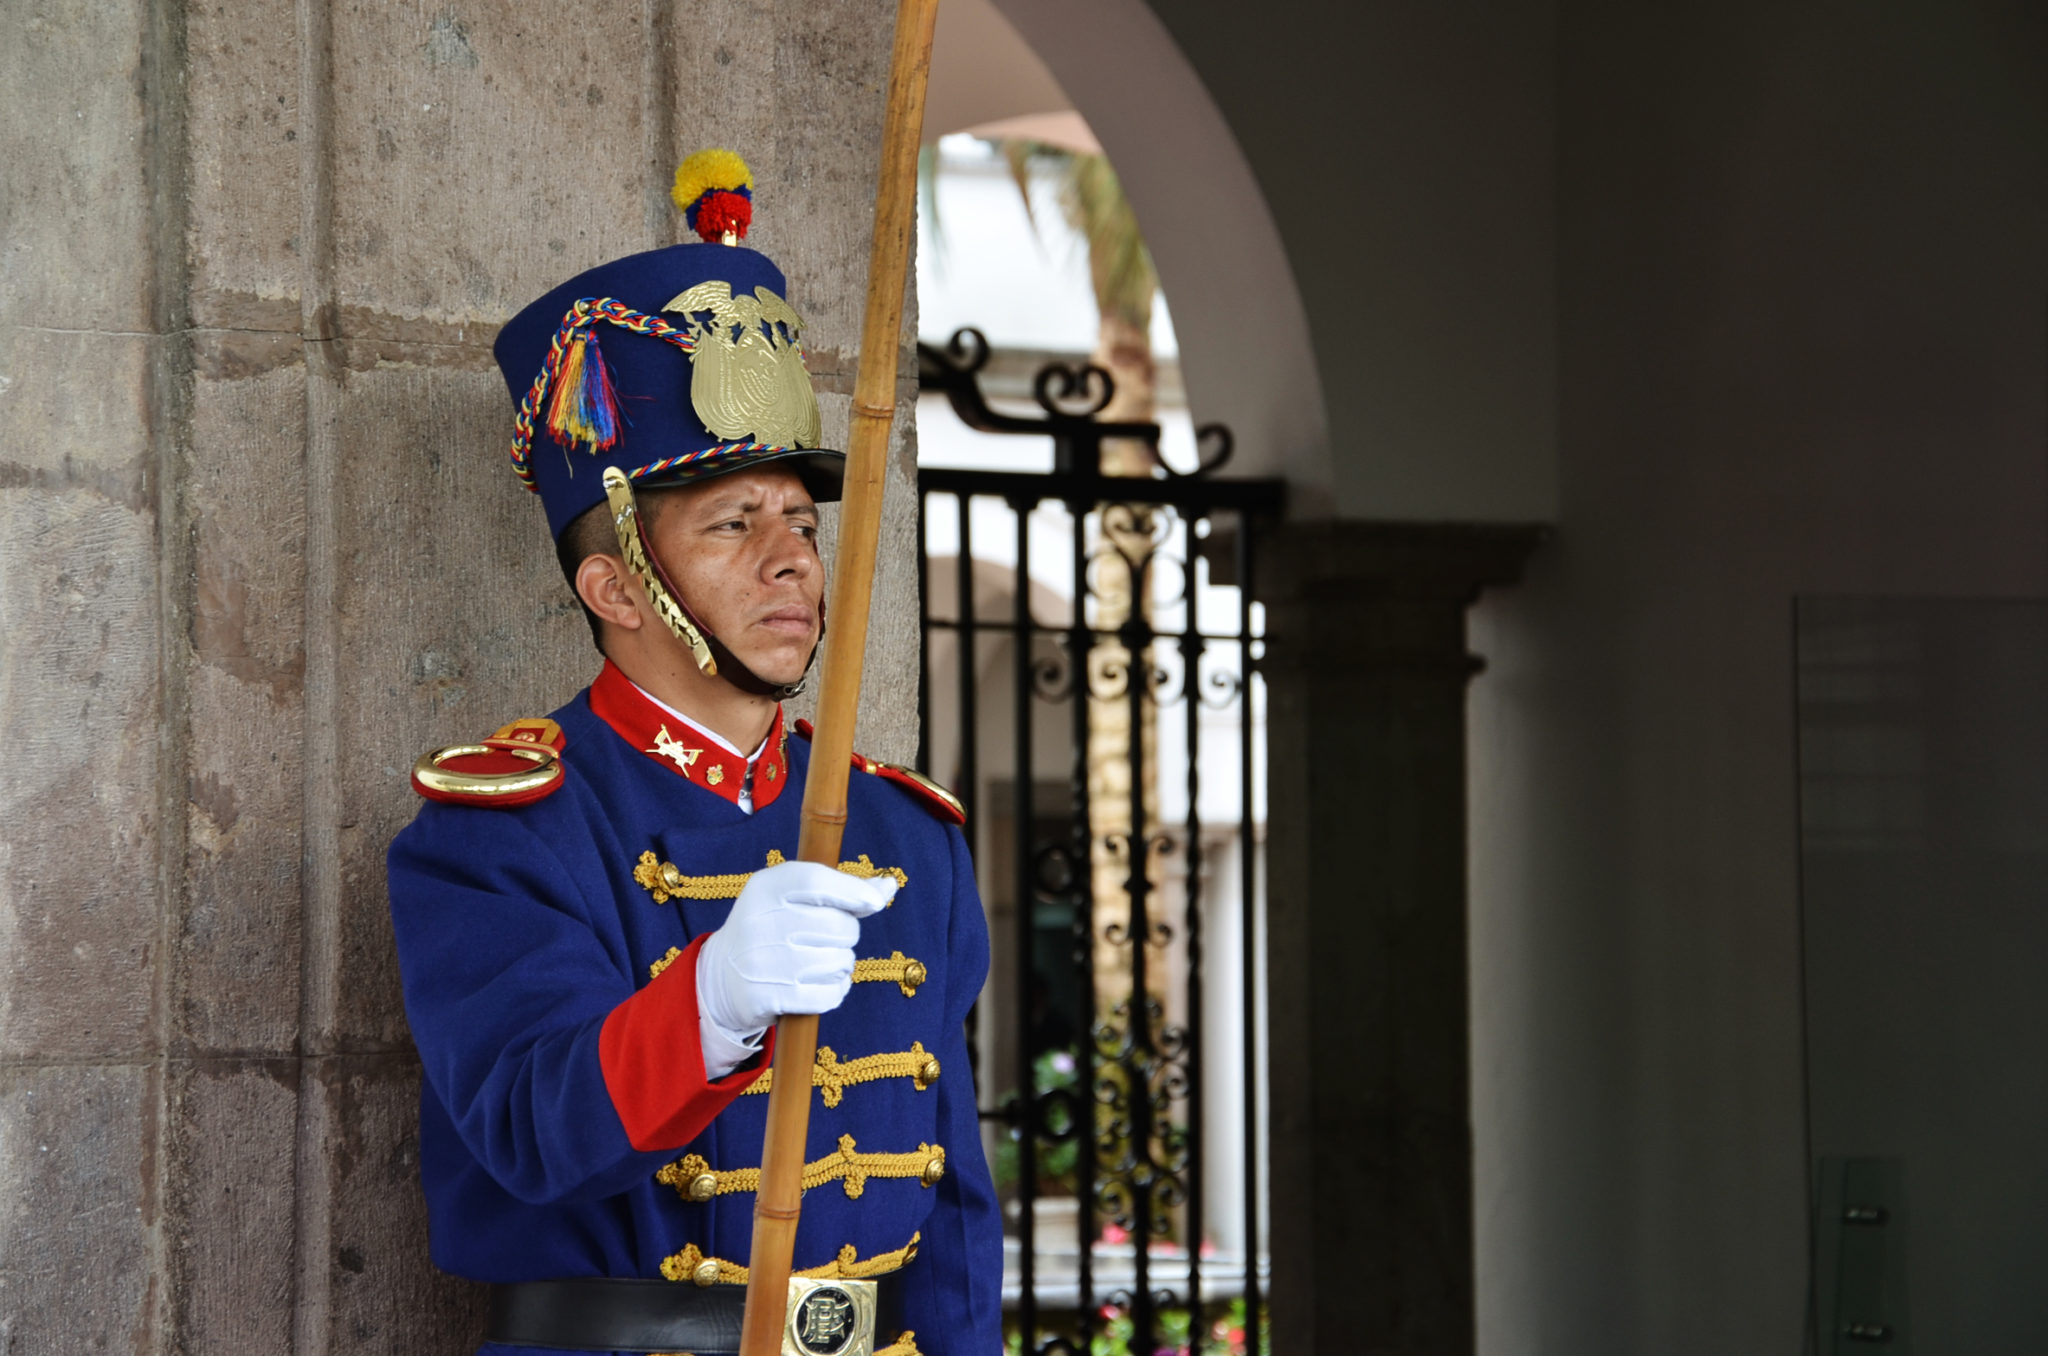 Things-to-see-in-Ecuador-Quito-presidential-palace-guard